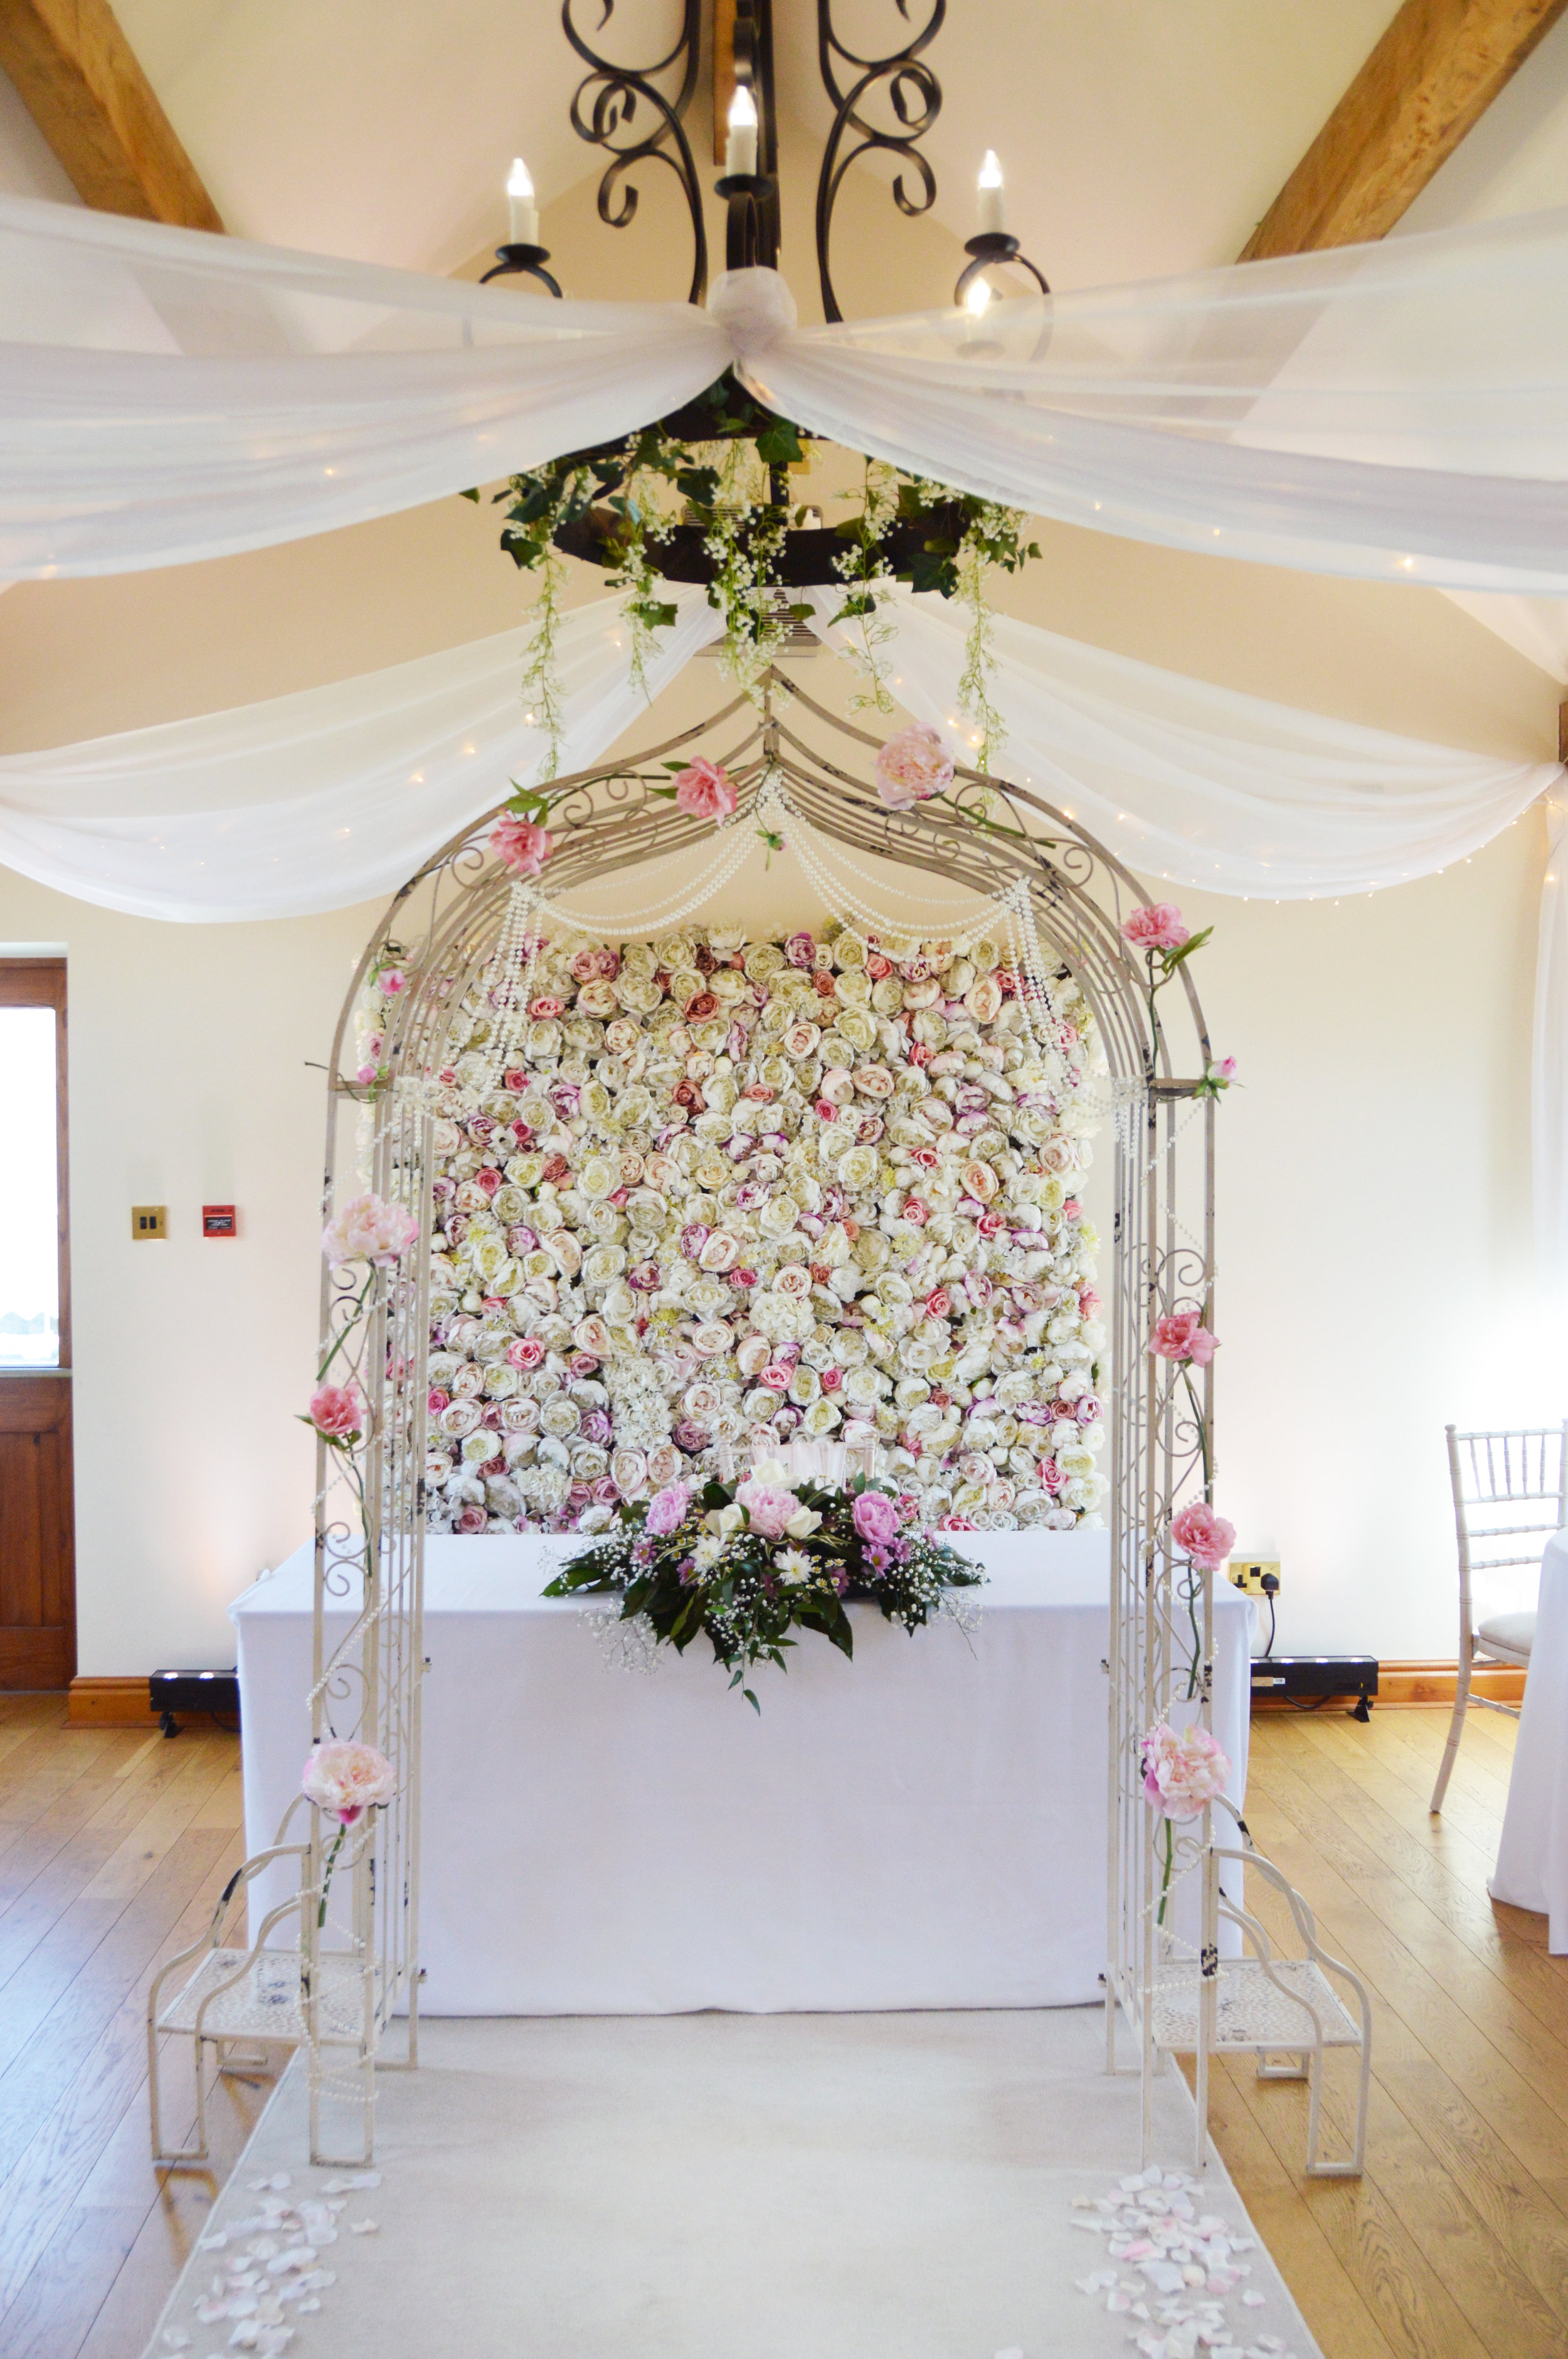 Flower wall and arch way